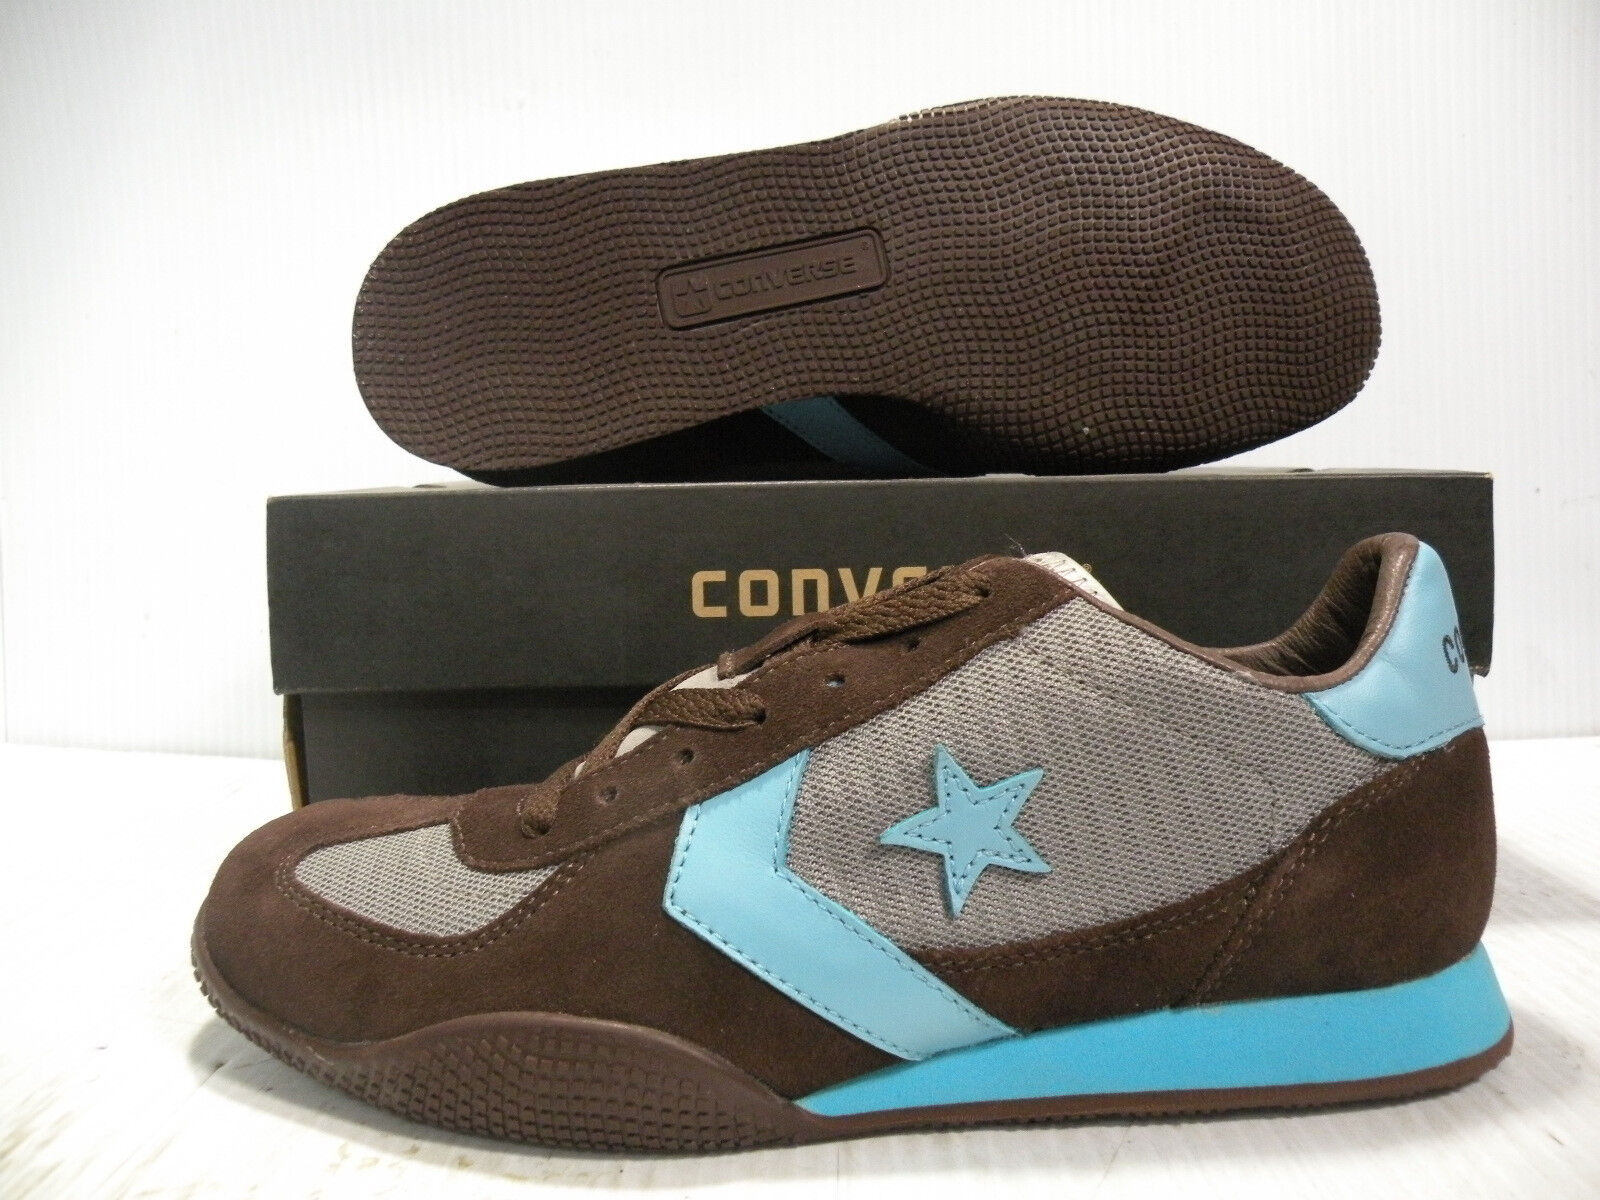 CONVERSE TARGA XLT OX VINTAGE 1984 MEN SHOES SKY blueE BROWN 1S894 SIZE 12 NEW